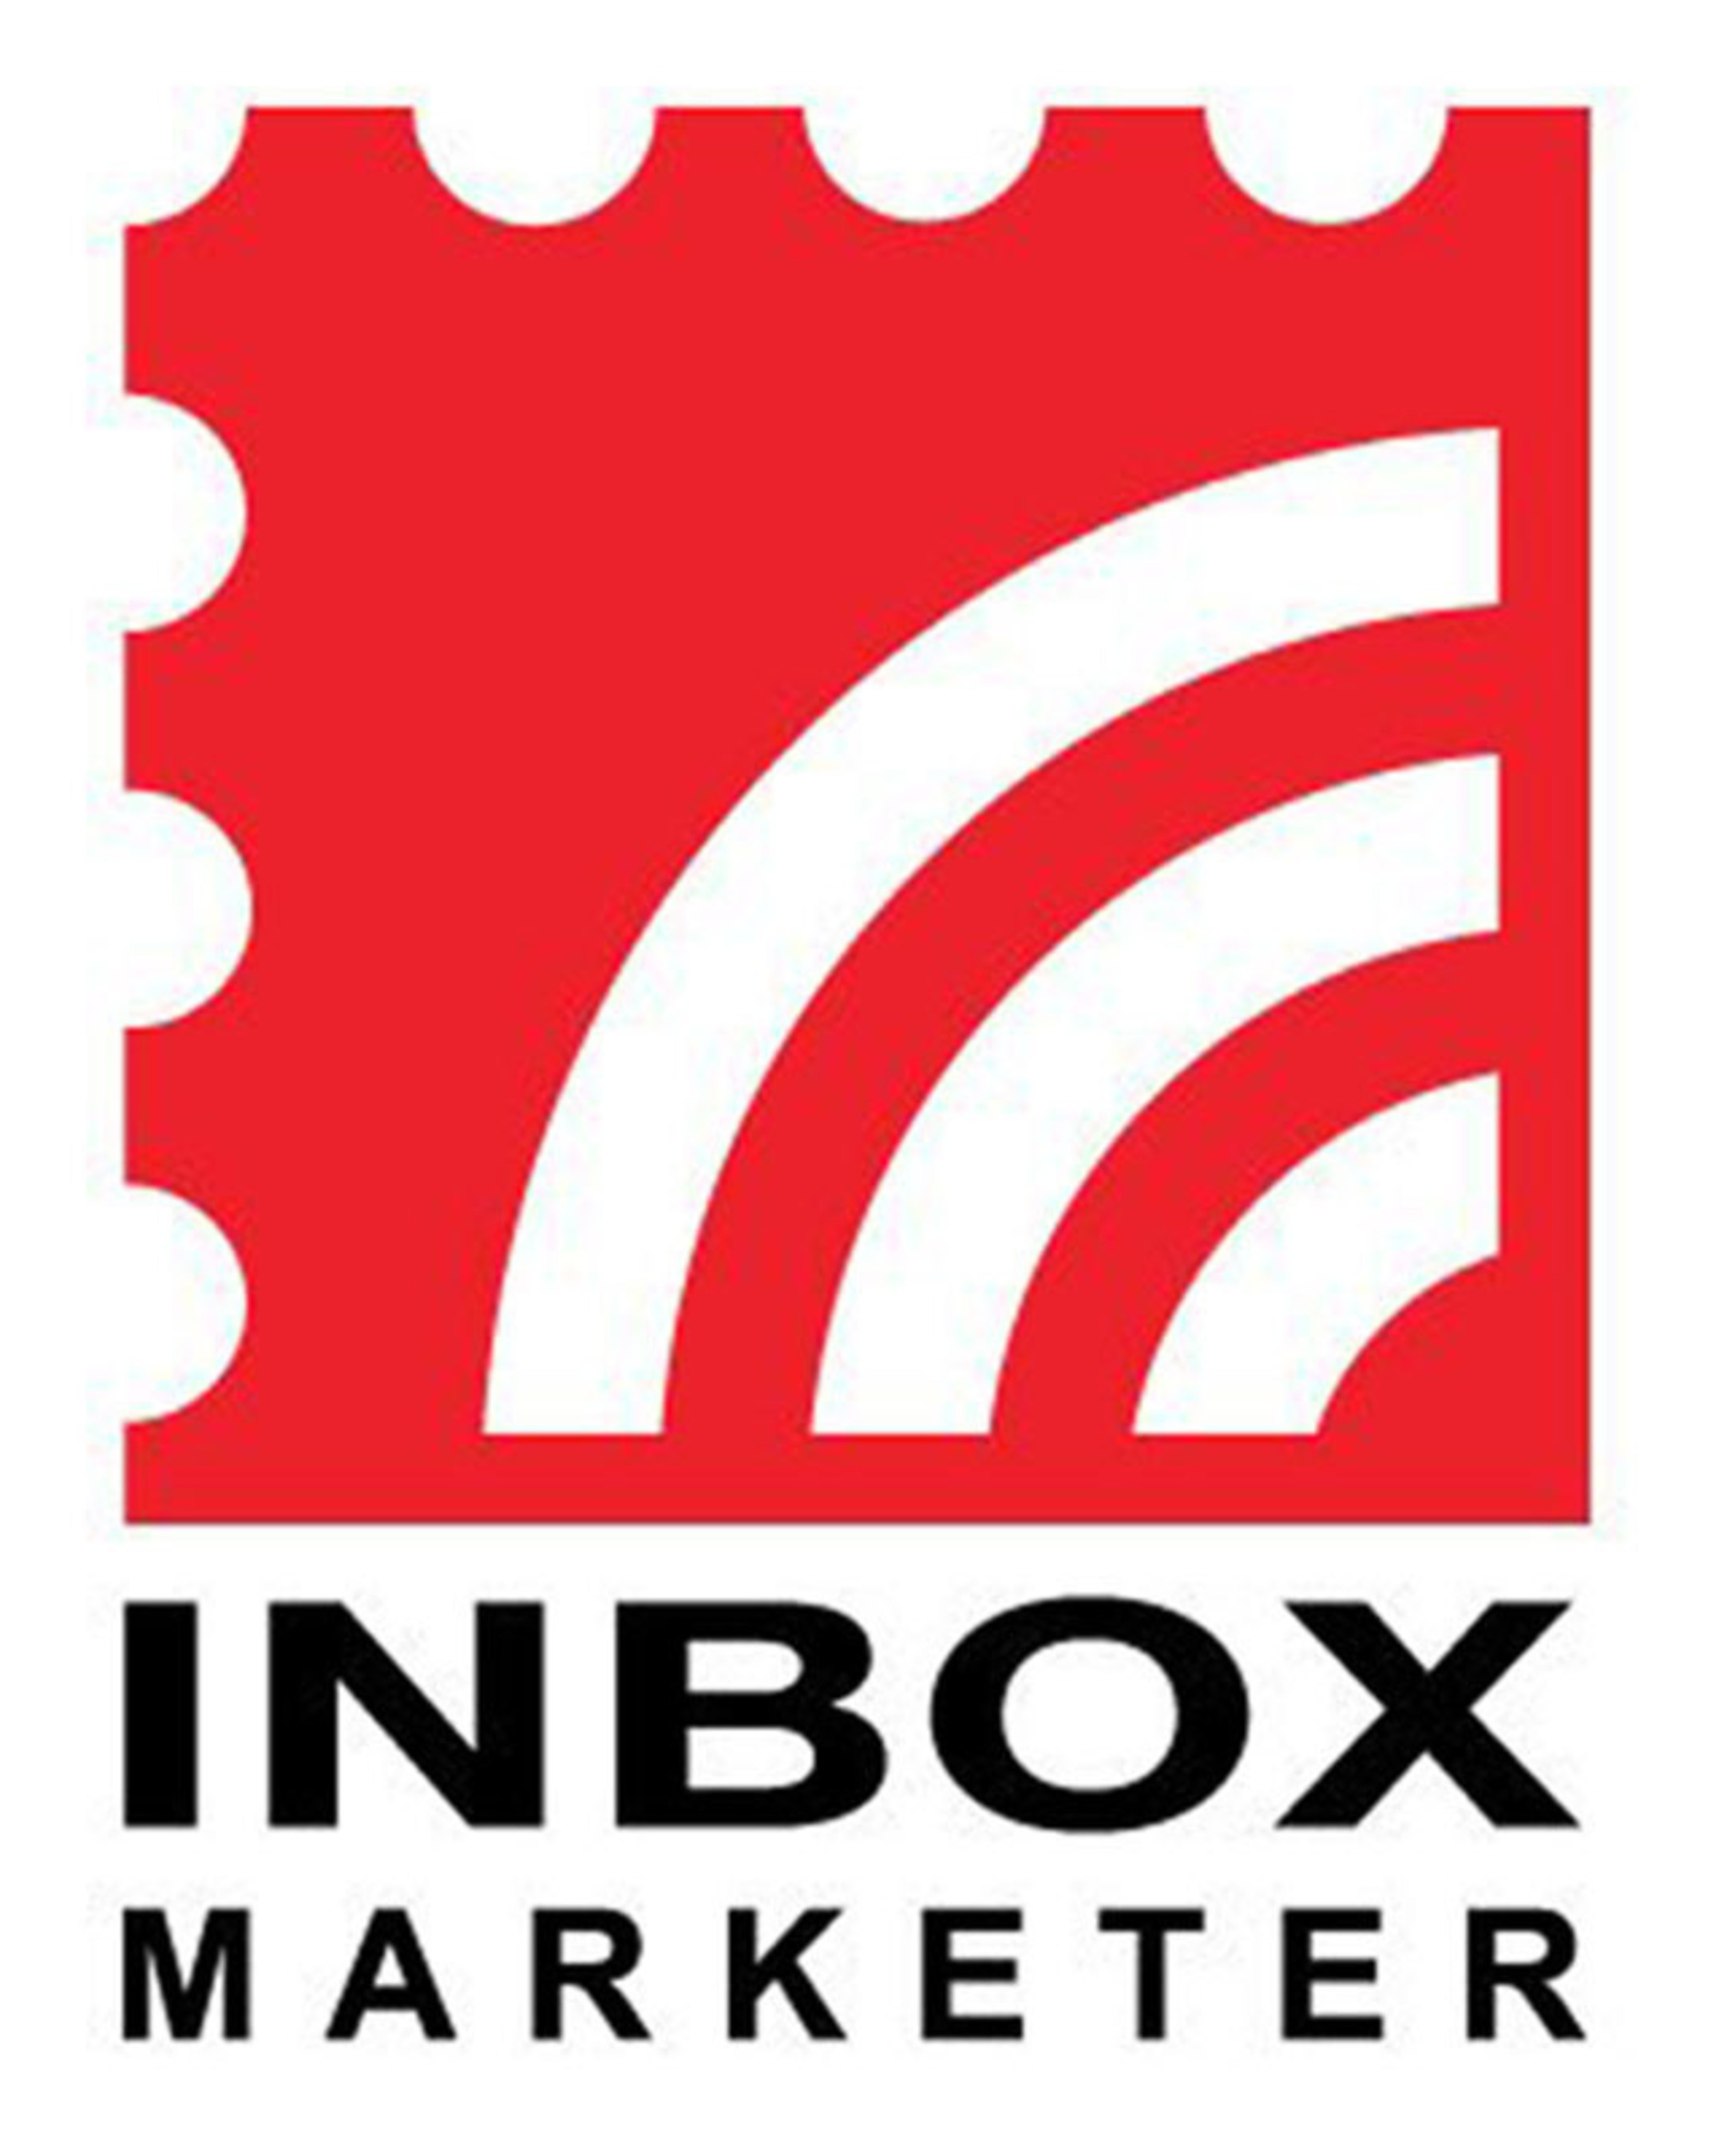 Inbox Marketer is the Top Ranked Vendor for Mid-Market Clients